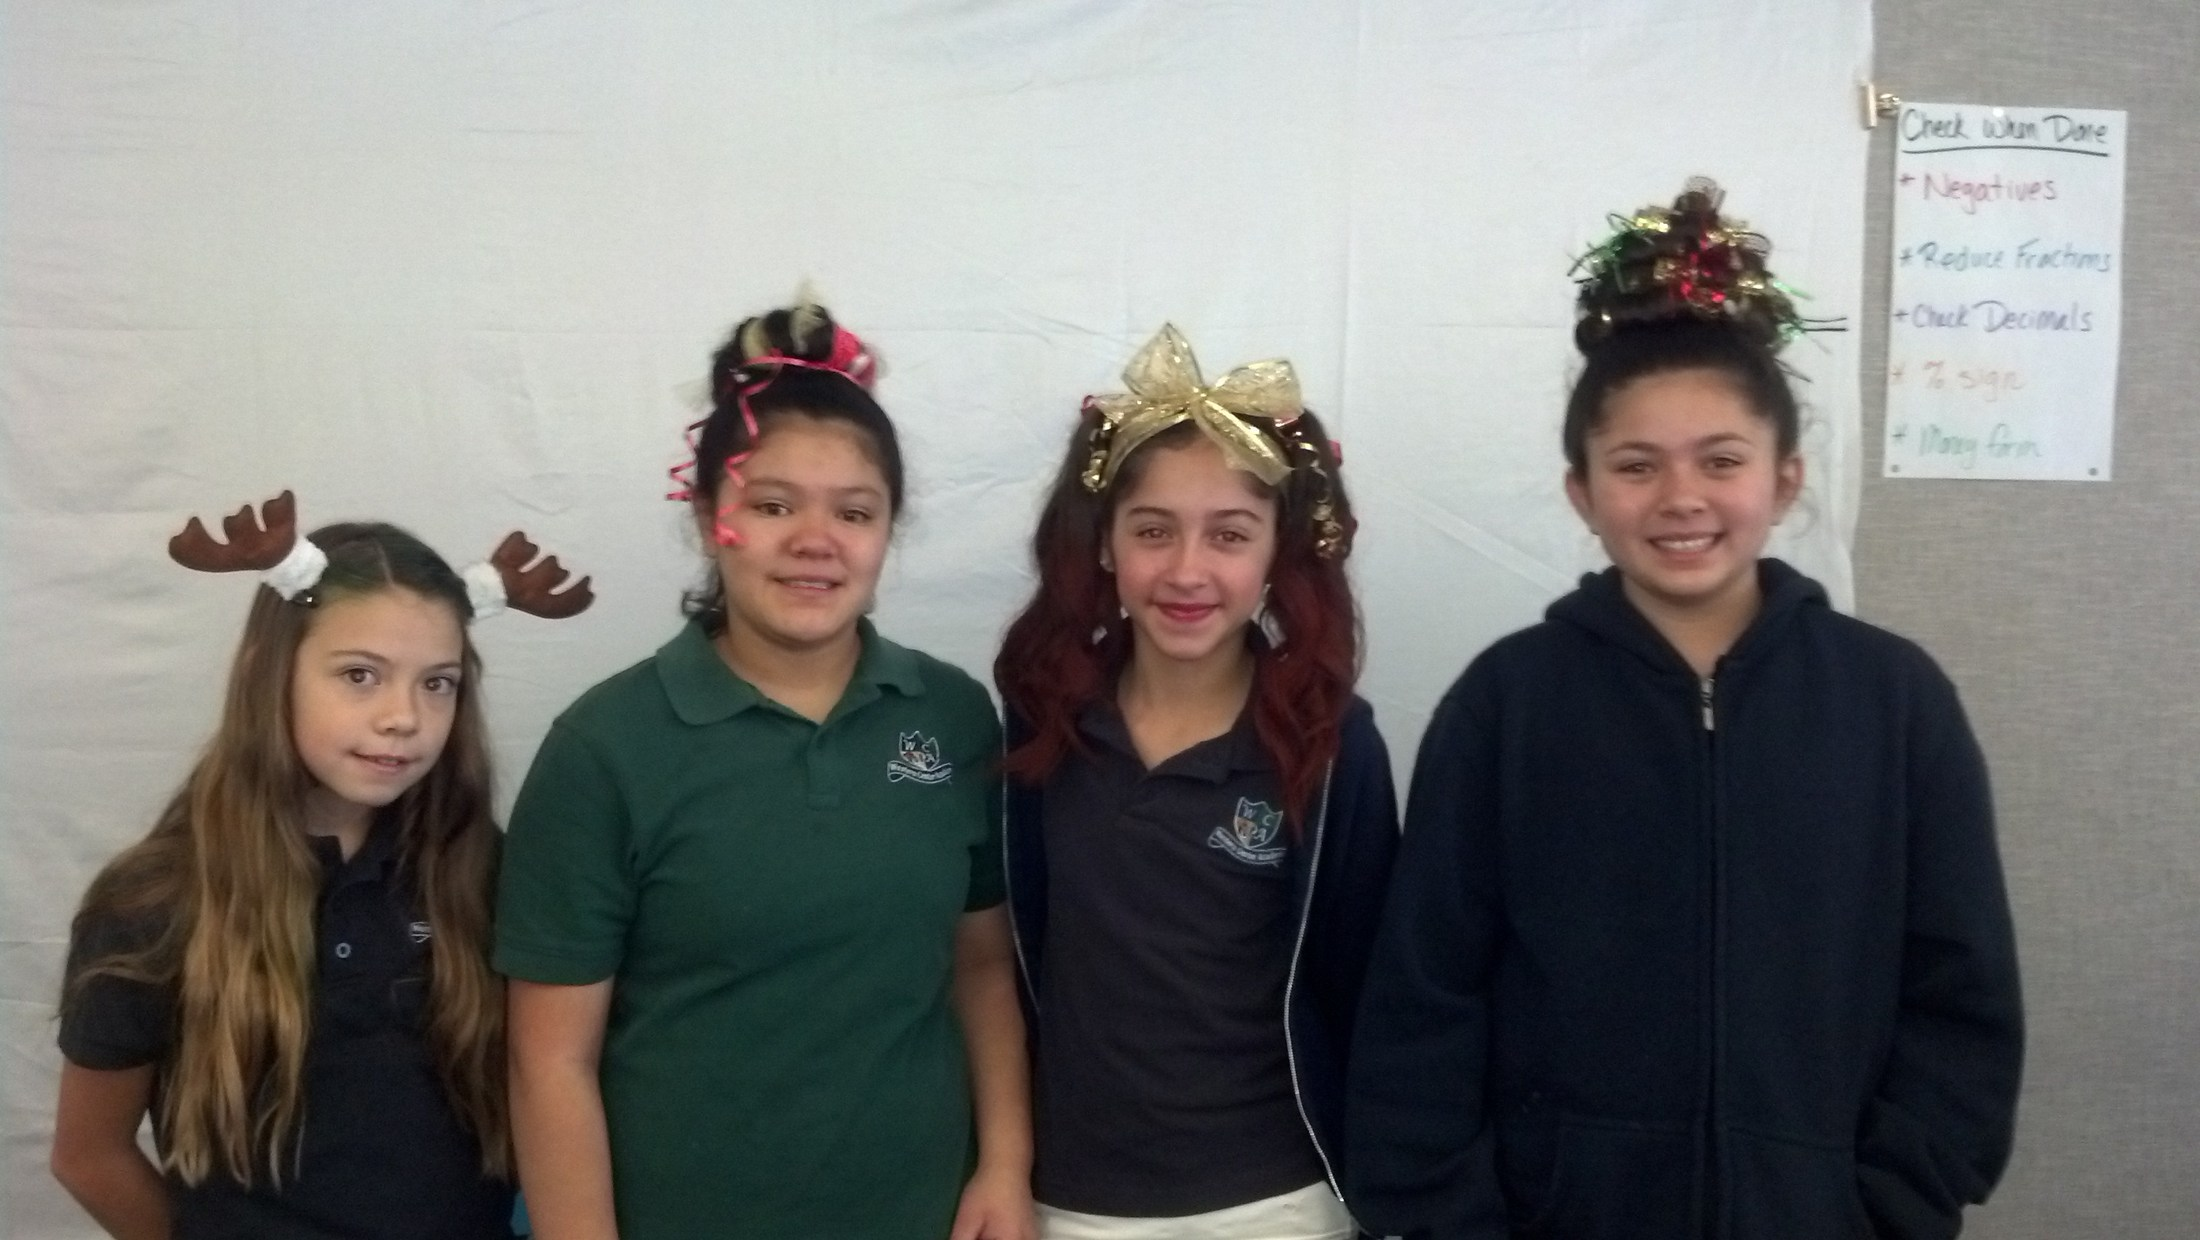 Students celebrating spirit week with crazy hair styles